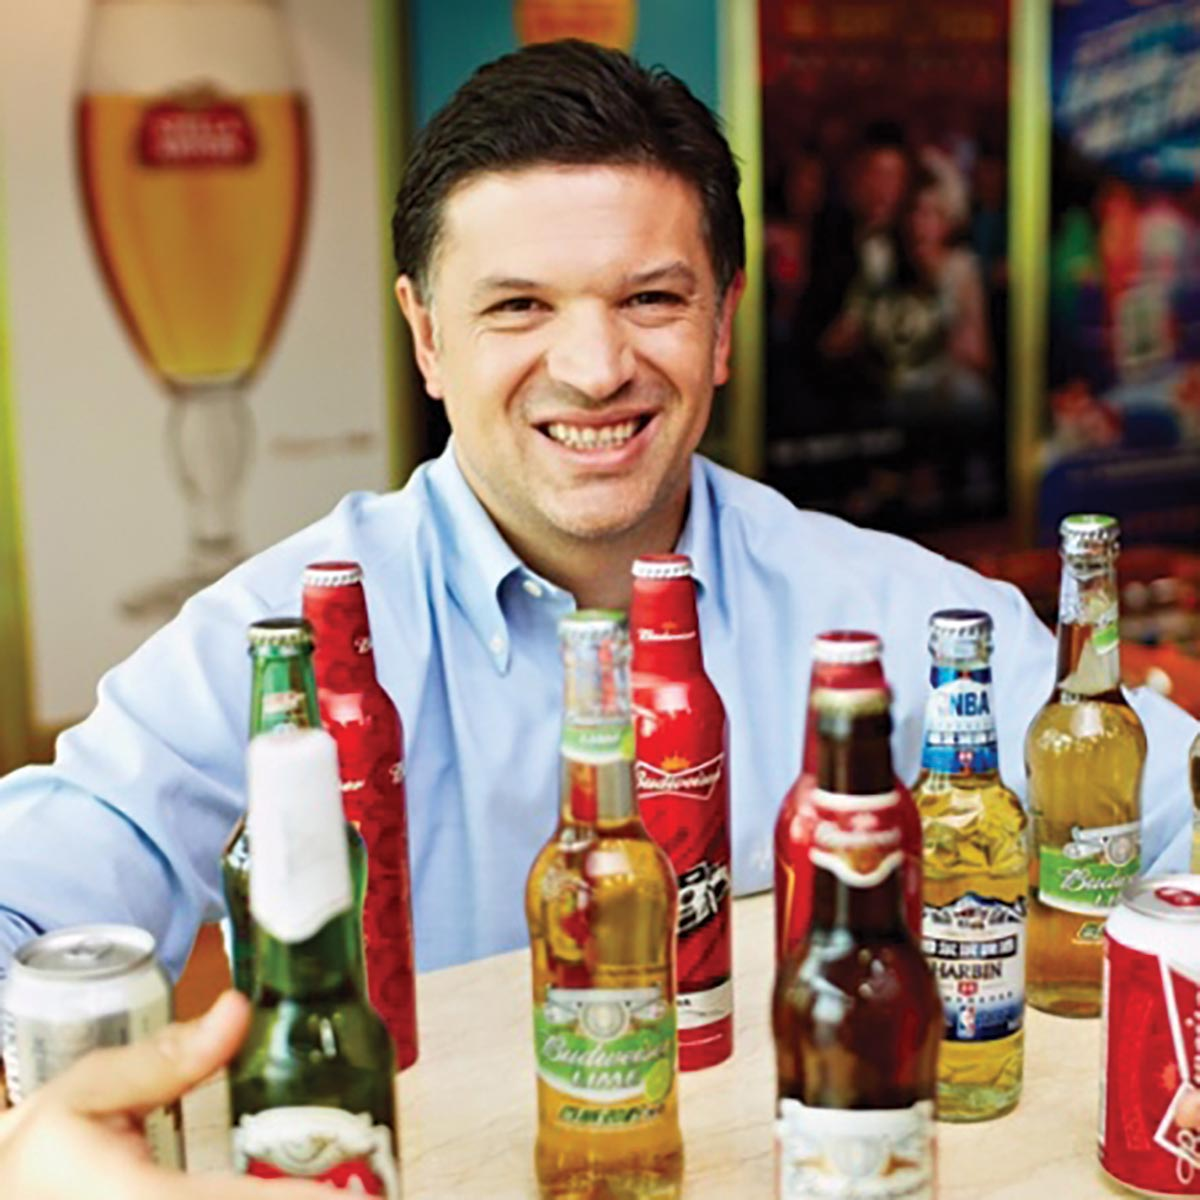 AB InBev's Doukeris Named Zone President and CEO for North America